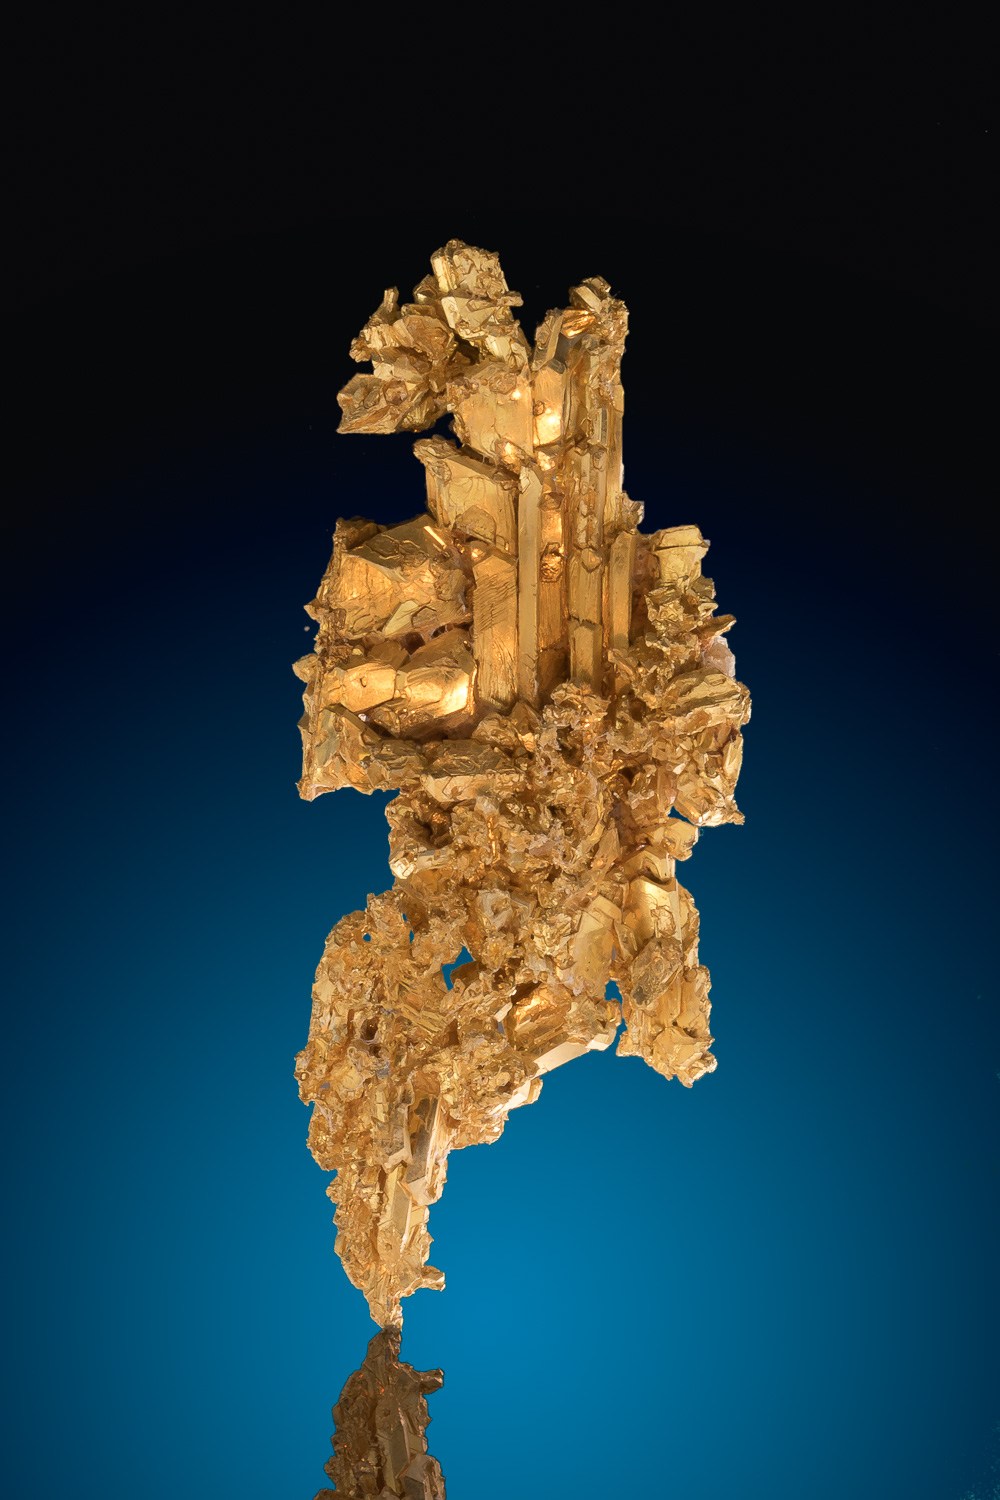 Sharp and Faceted - Brilliant Gold Crystal Specimen, Nevada